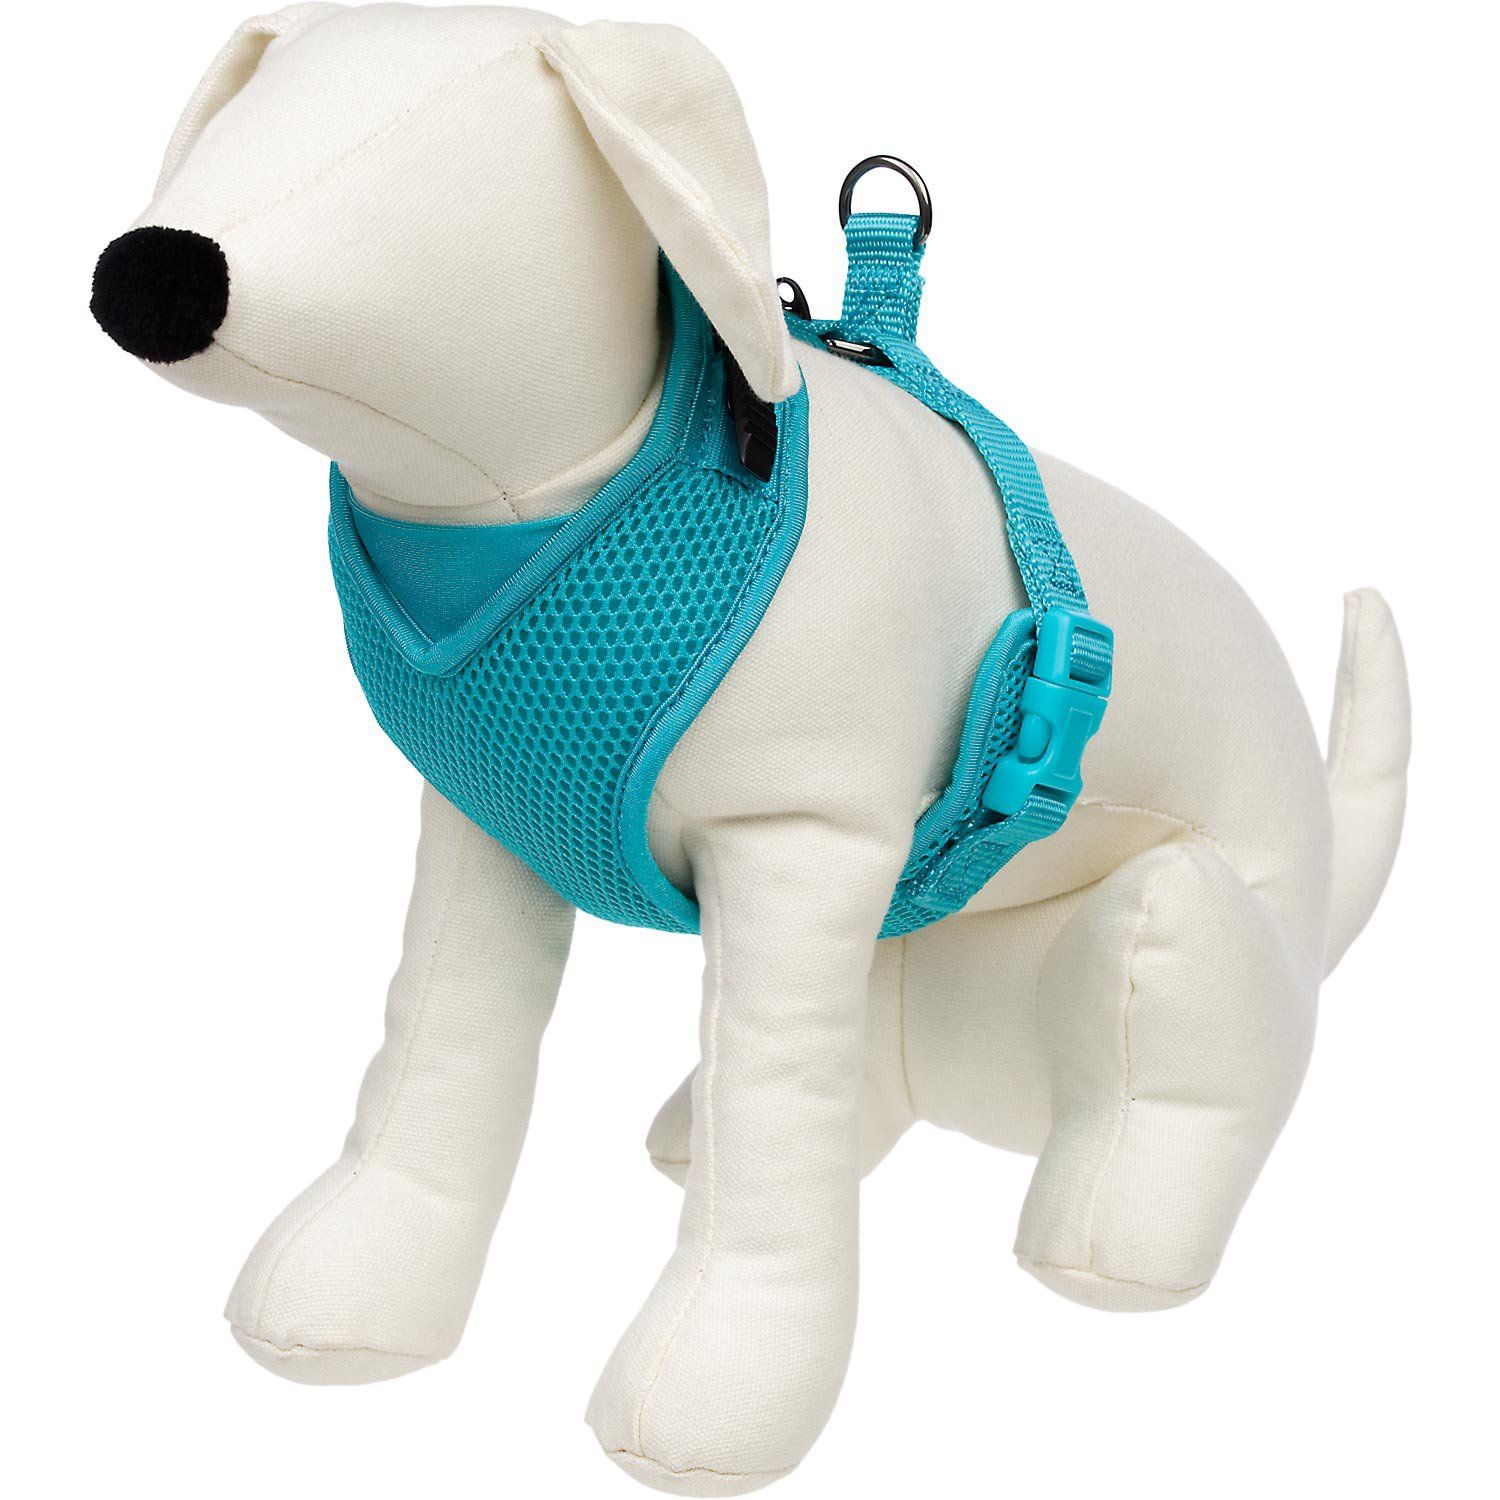 Petco Adjustable Mesh Harness For Dogs In Teal Petco Store Dog Safety Harness Dog Harness Red Dog Collar